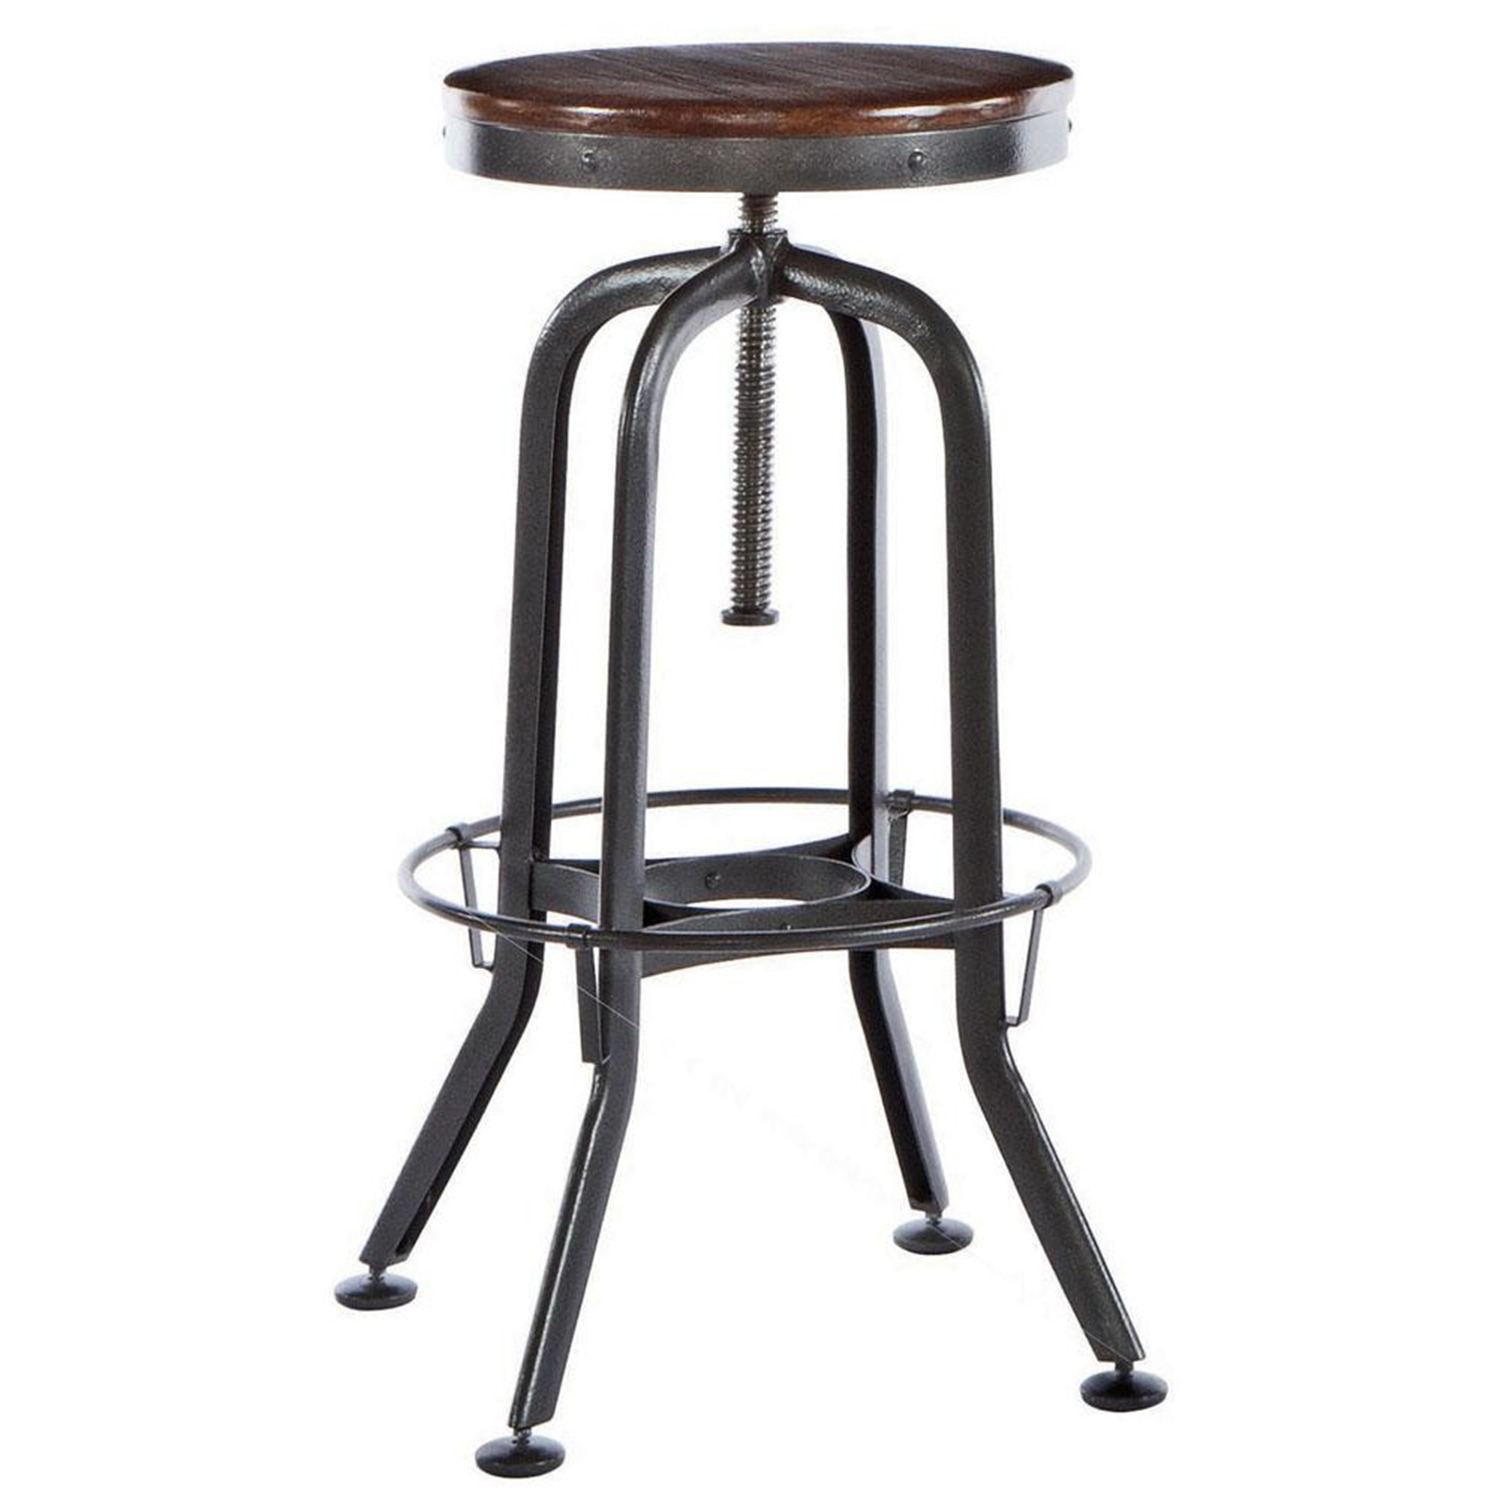 Sitcom vintage bar stool by oj commerce vint